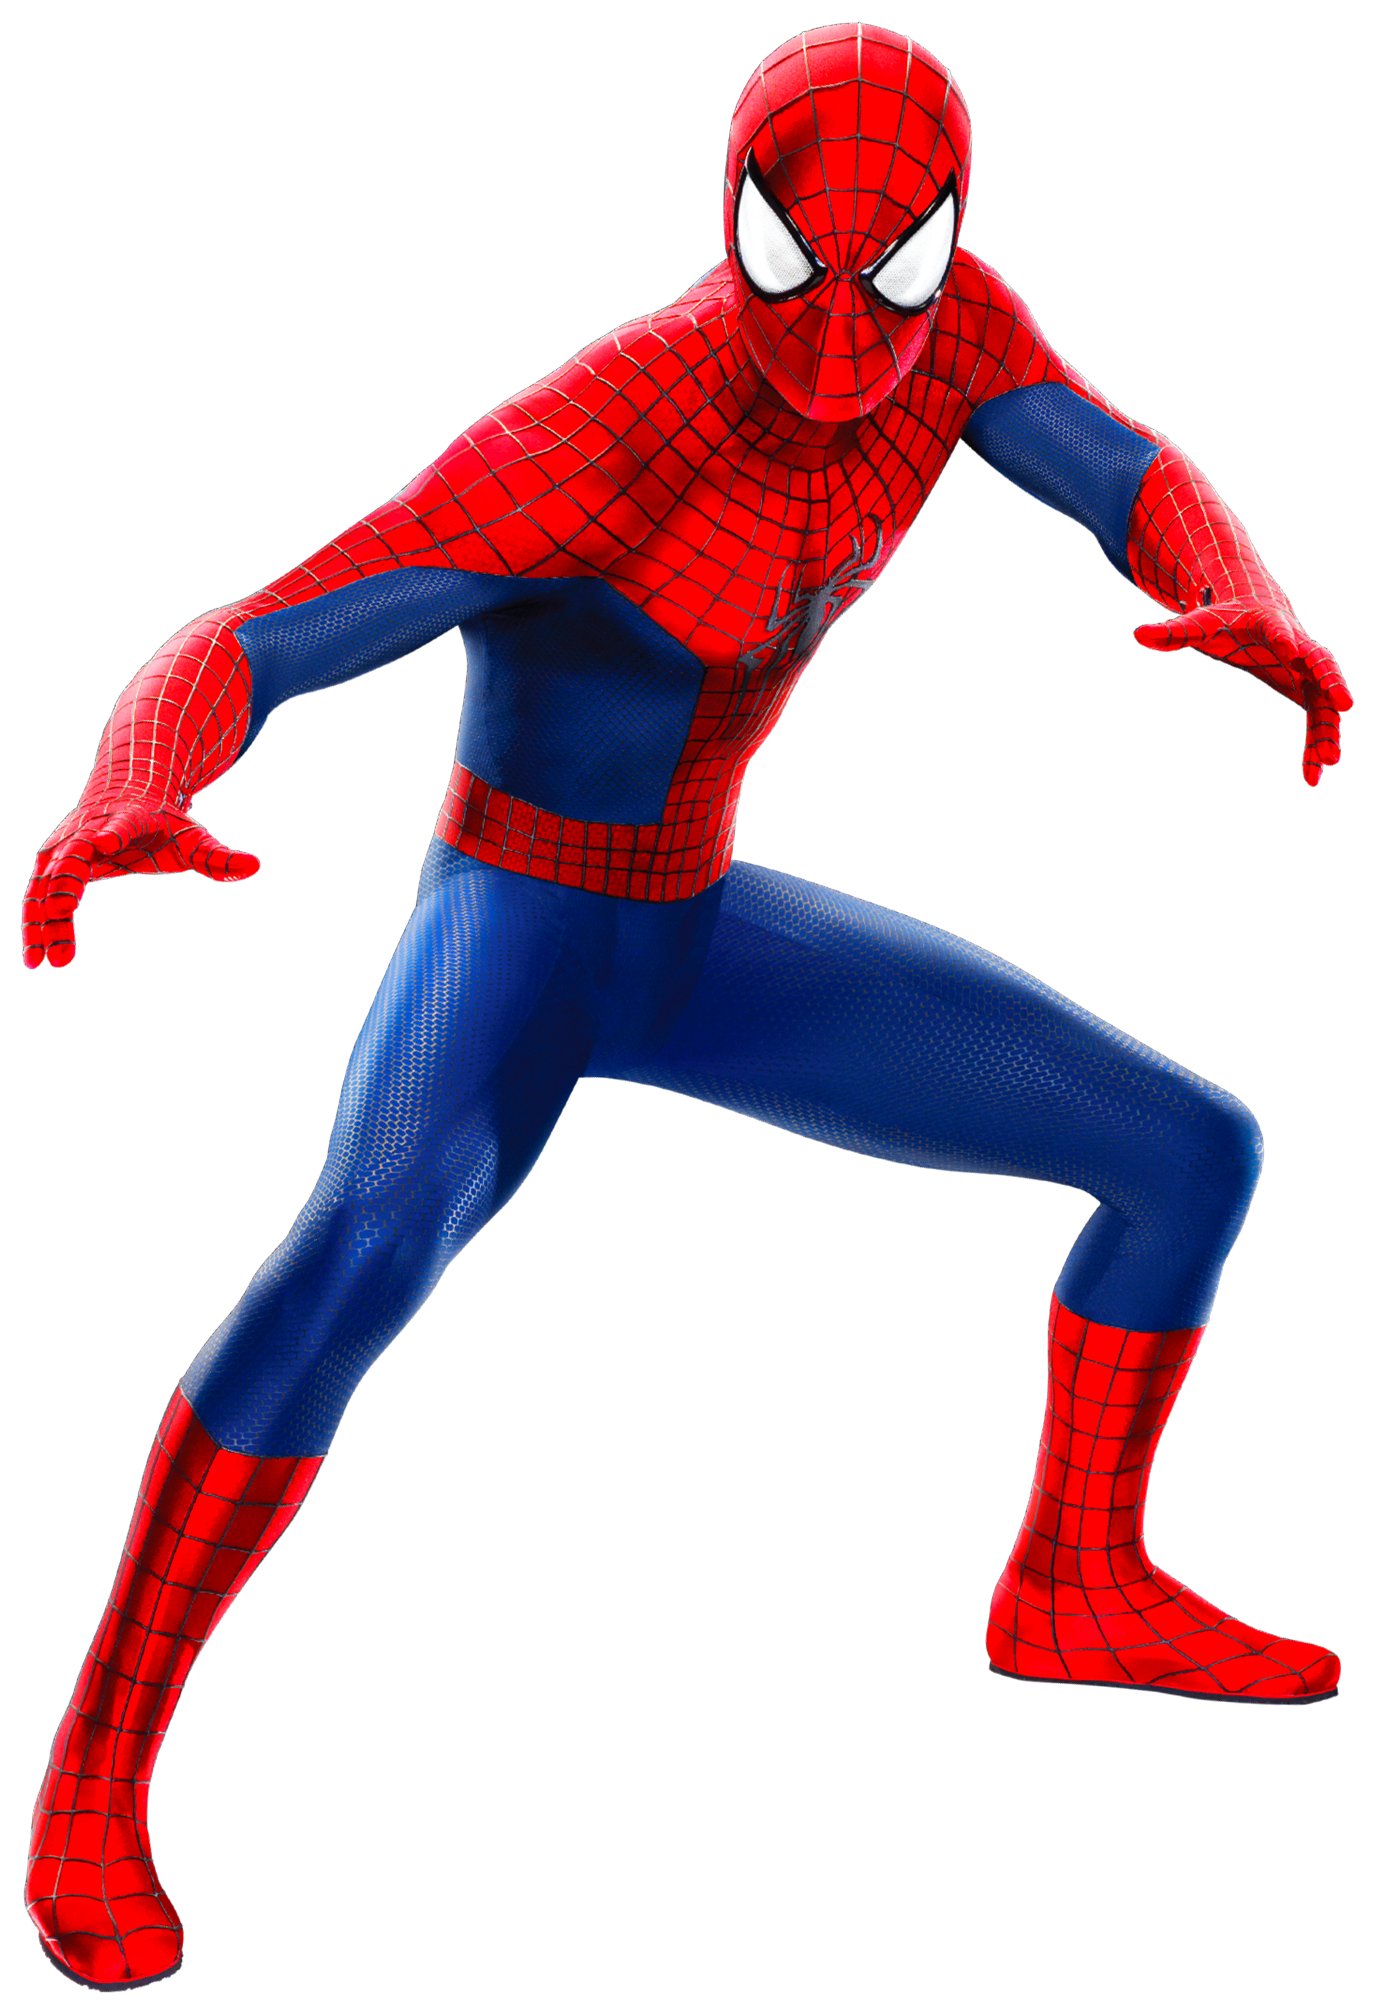 The amazing spider man. Youtube clipart spiderman